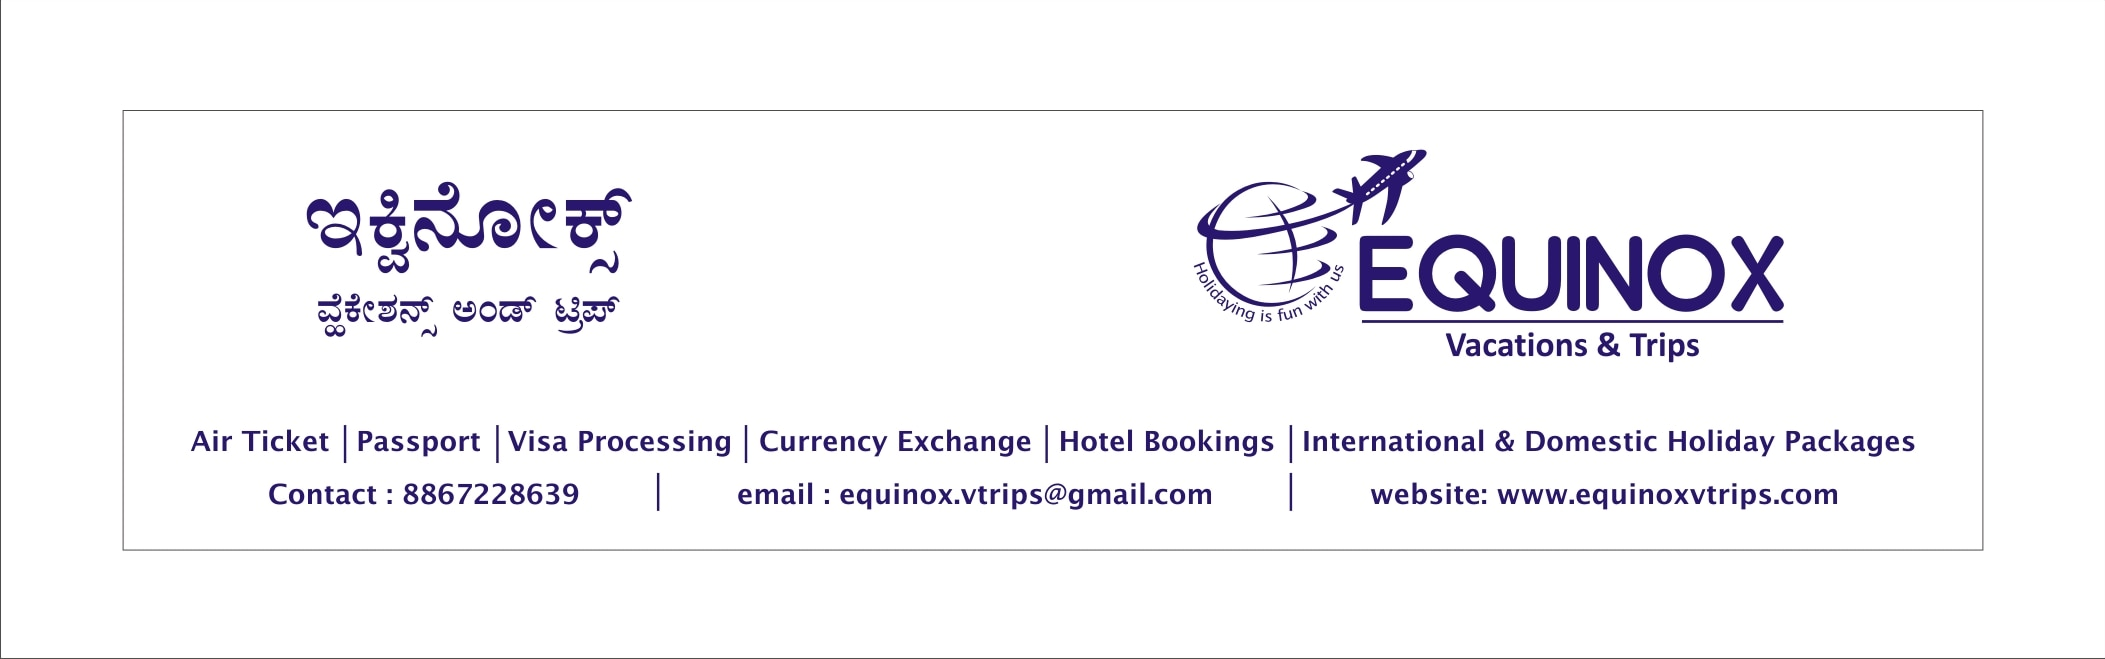 Equinox Vacations & Trips